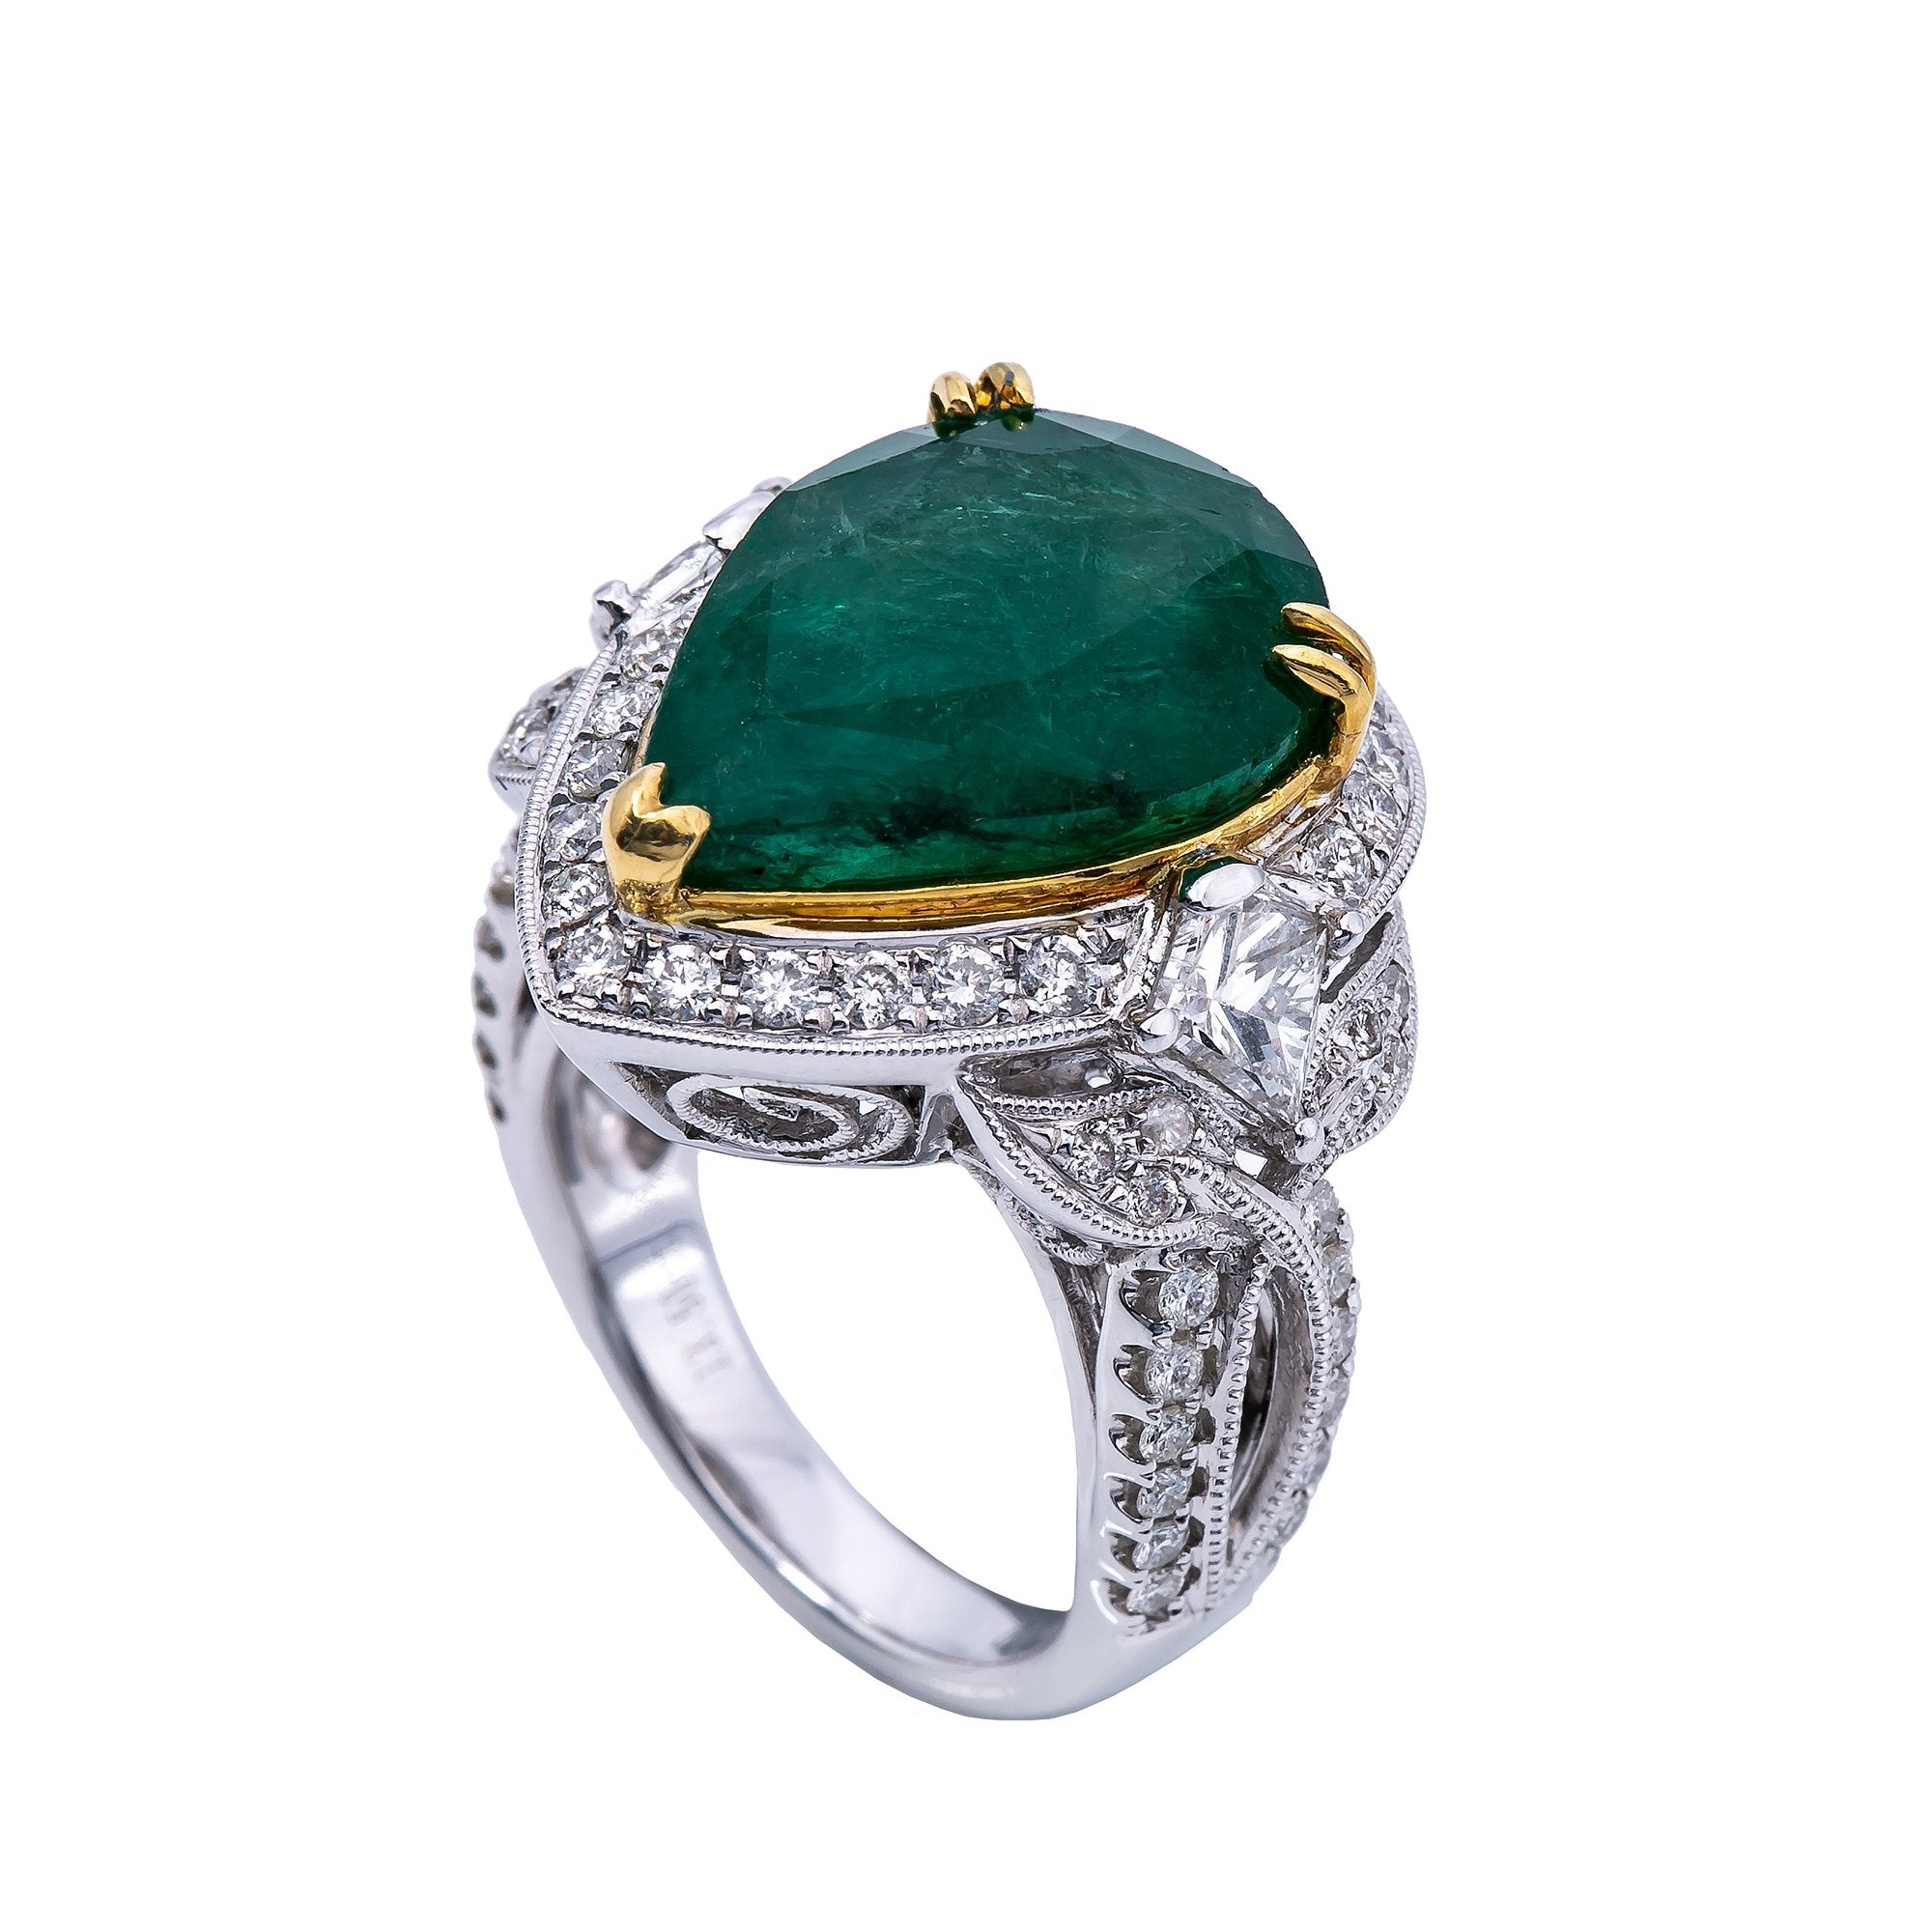 18K White Gold Round Shaped Emerald Ring